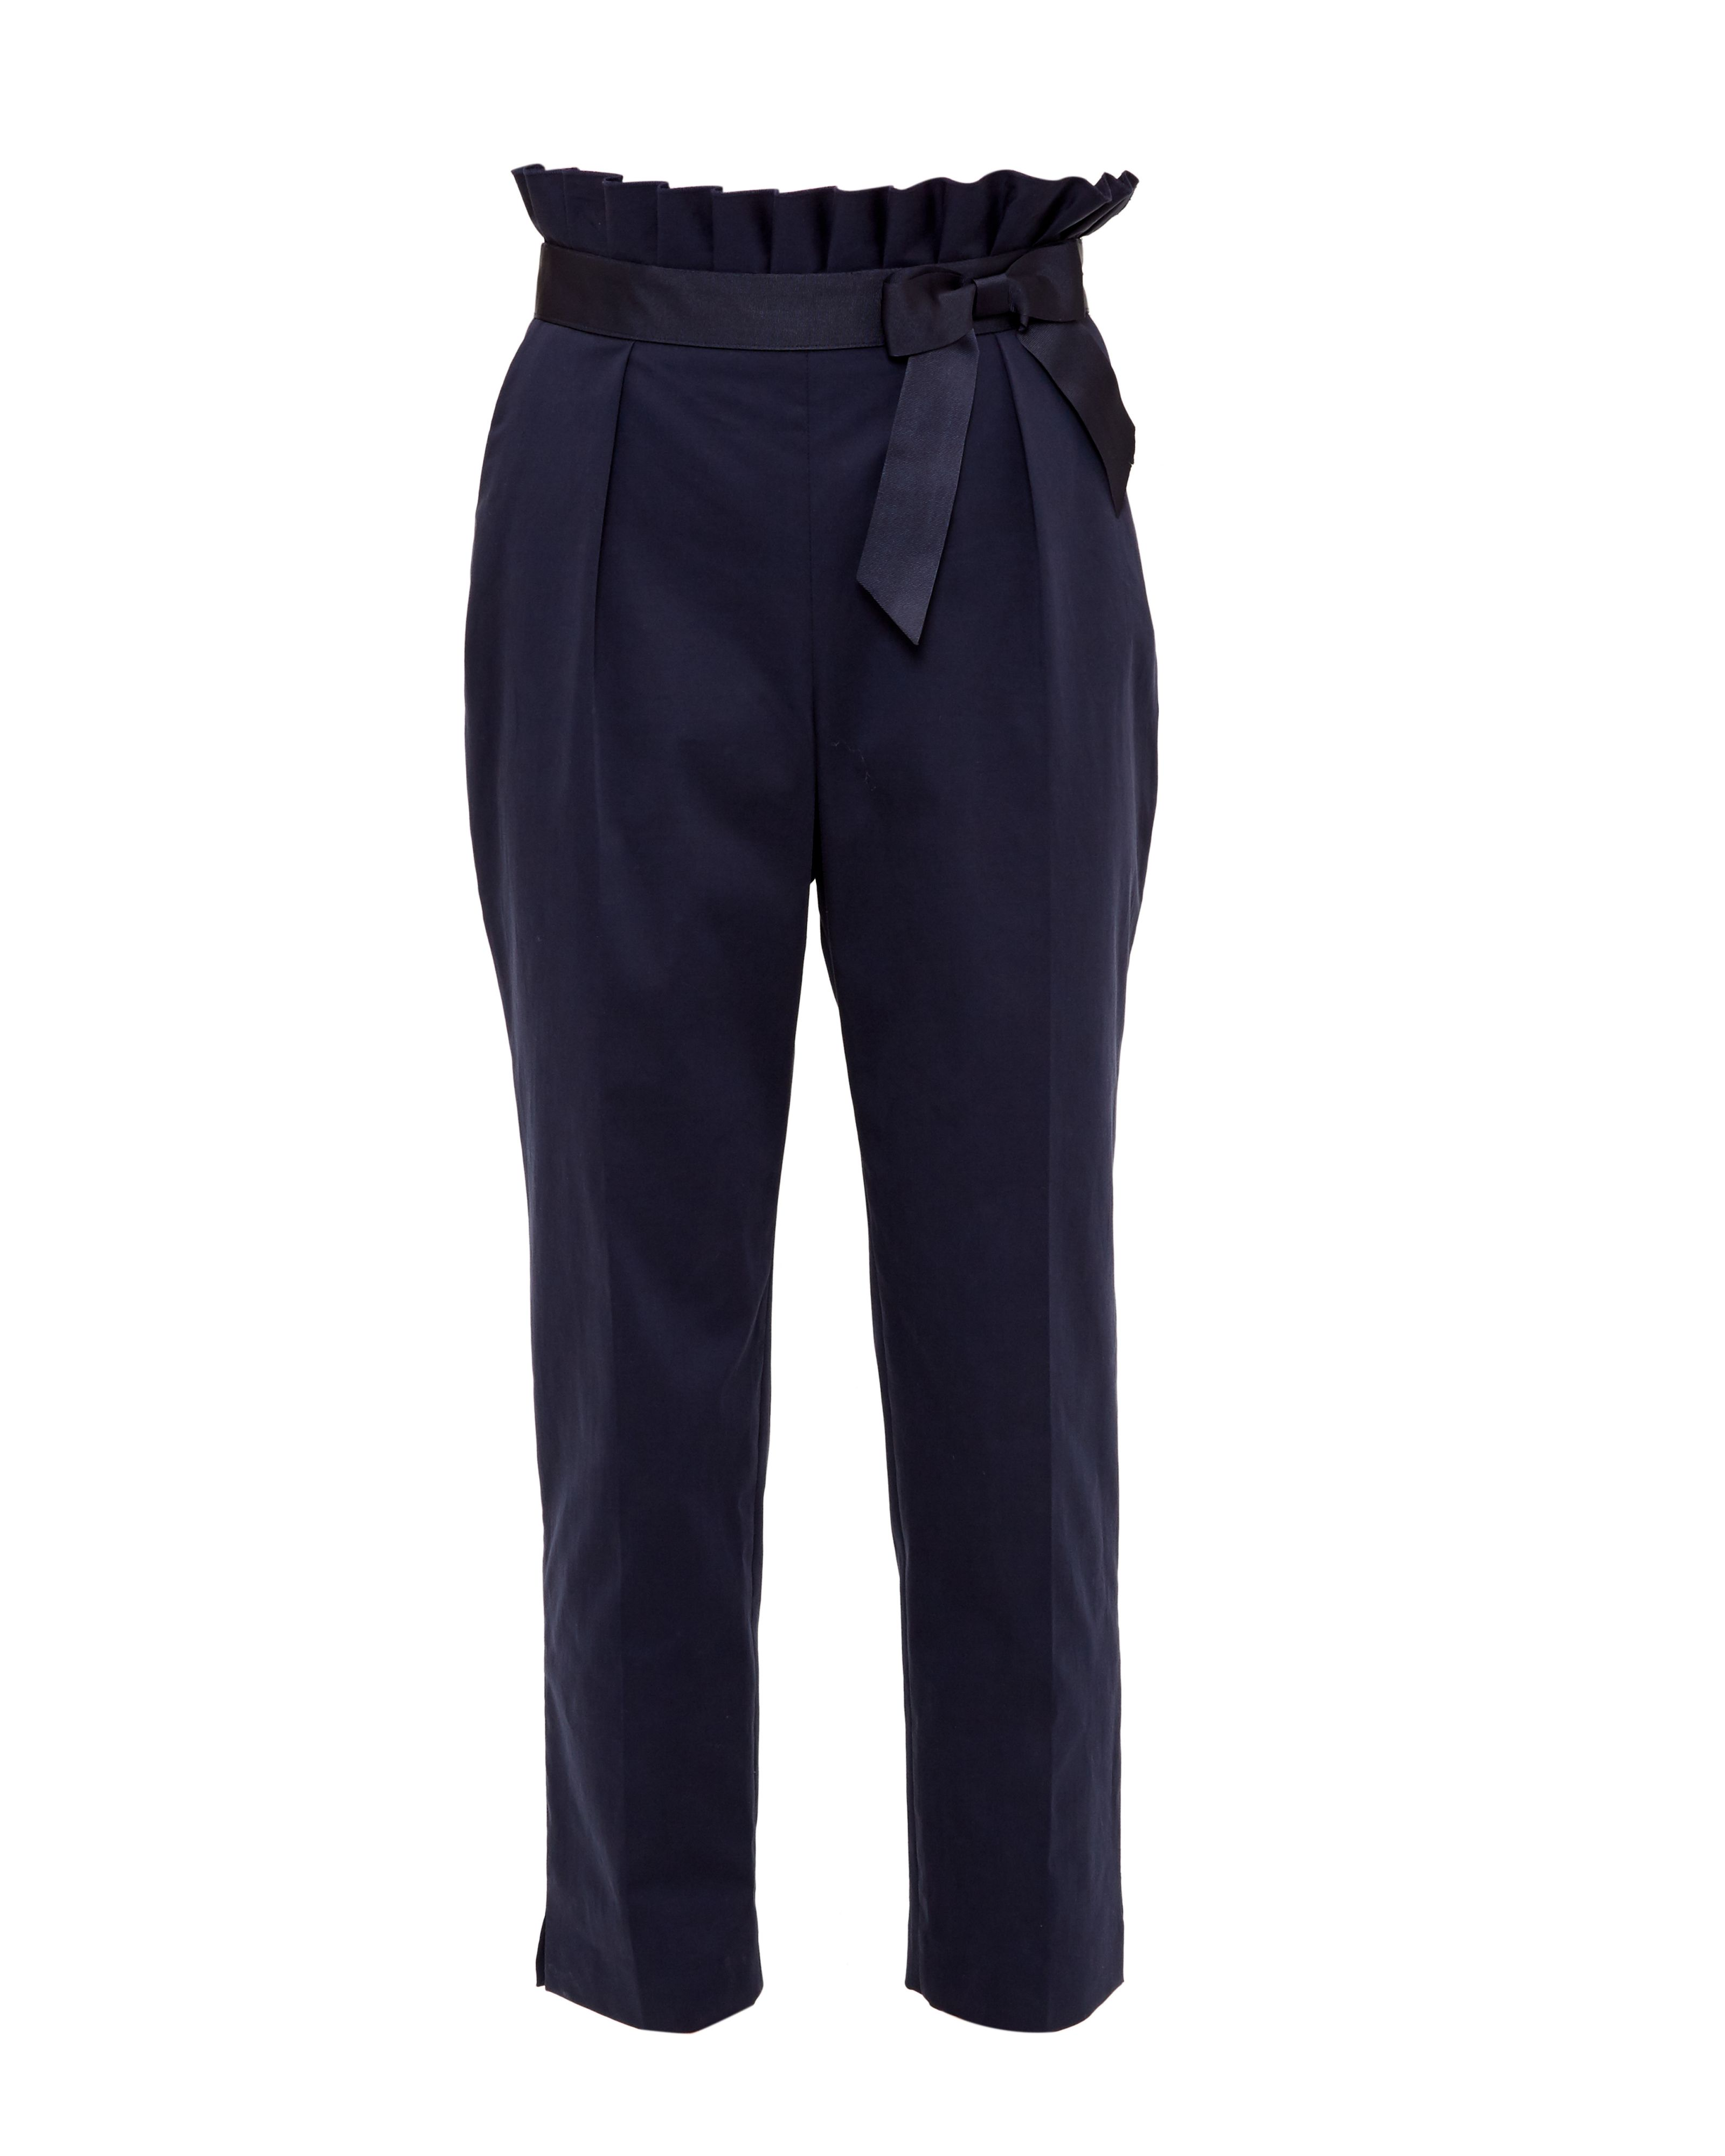 Ted Baker Verbo Ruffle Waistline Cotton-Blend Trousers, Blue